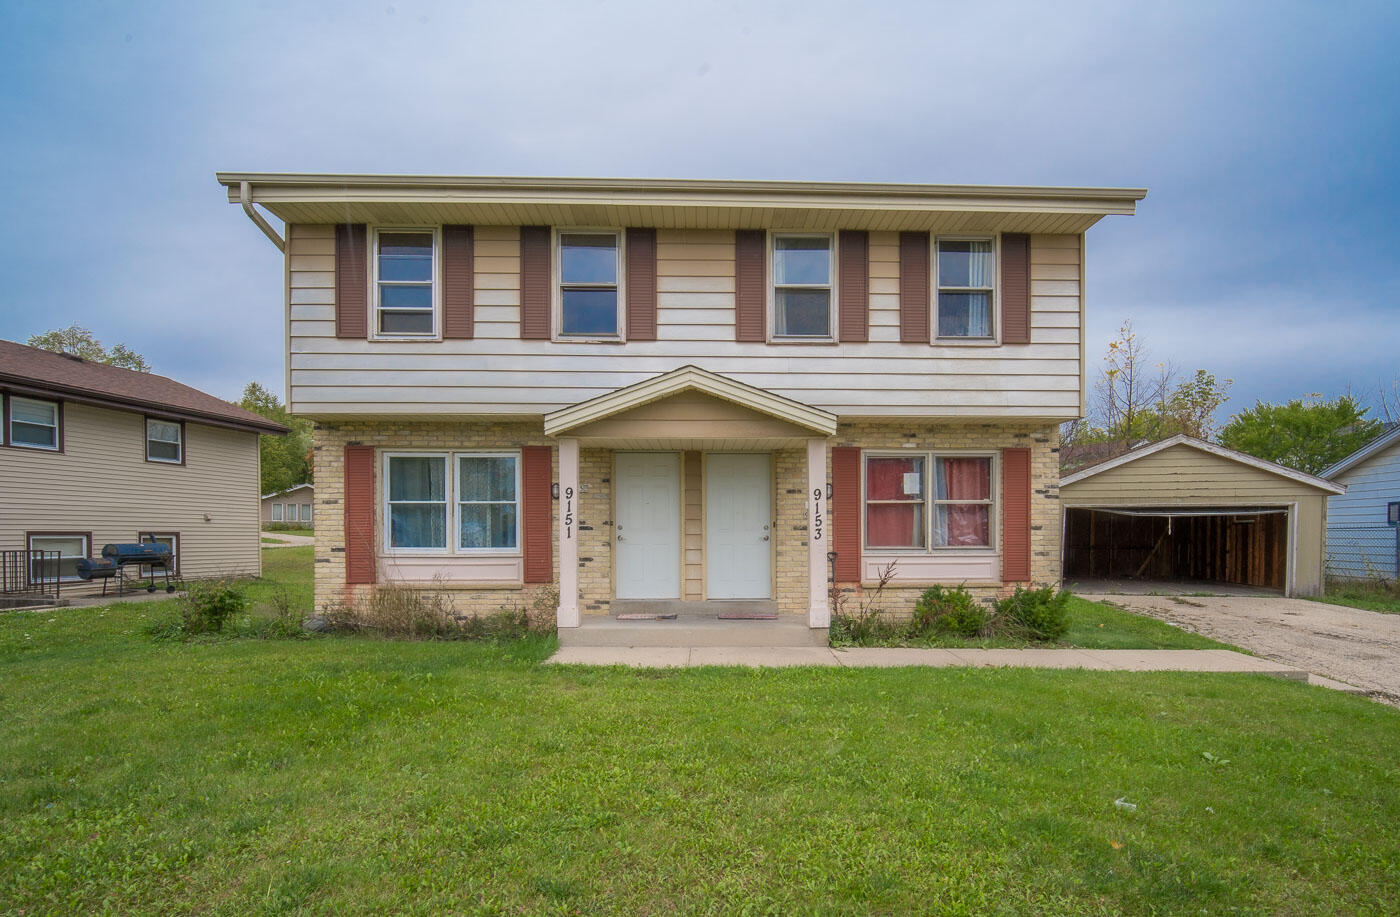 9151 86th Ct, Milwaukee, Wisconsin 53224, 3 Bedrooms Bedrooms, 5 Rooms Rooms,1 BathroomBathrooms,Two-Family,For Sale,86th Ct,1,1768299